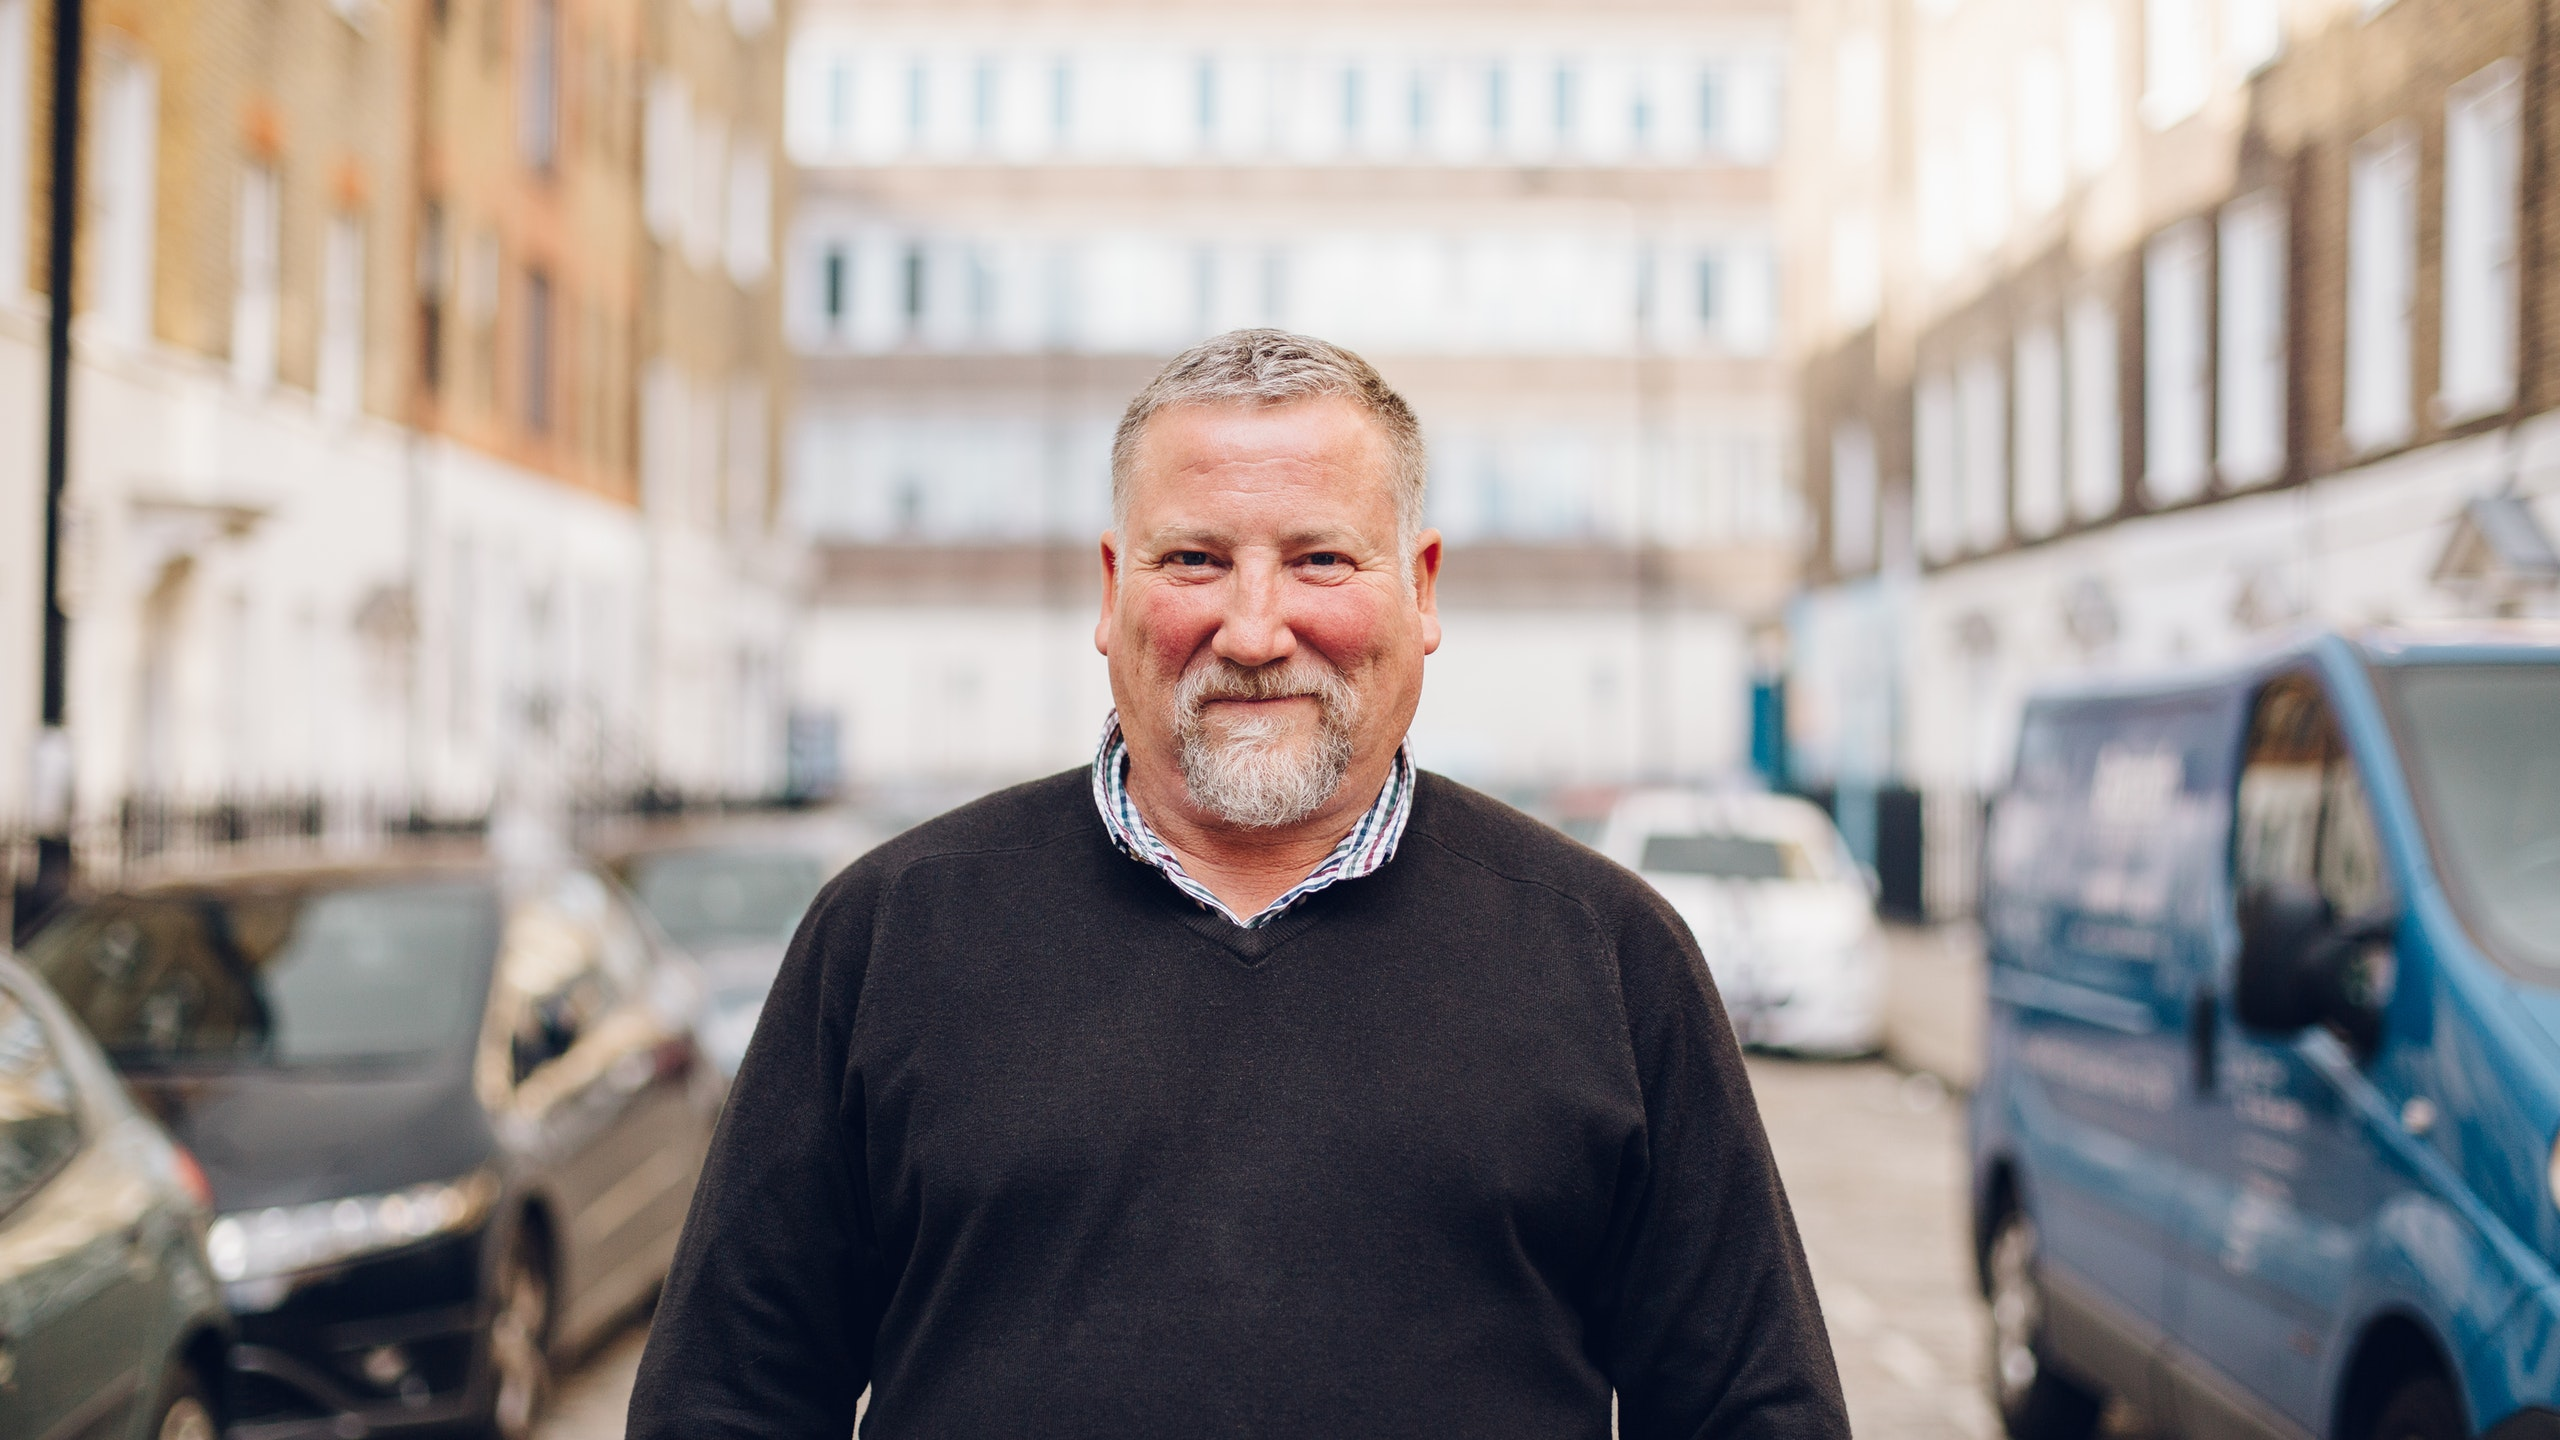 Get to know Gavin Hay - CEO of Cherry Cherry